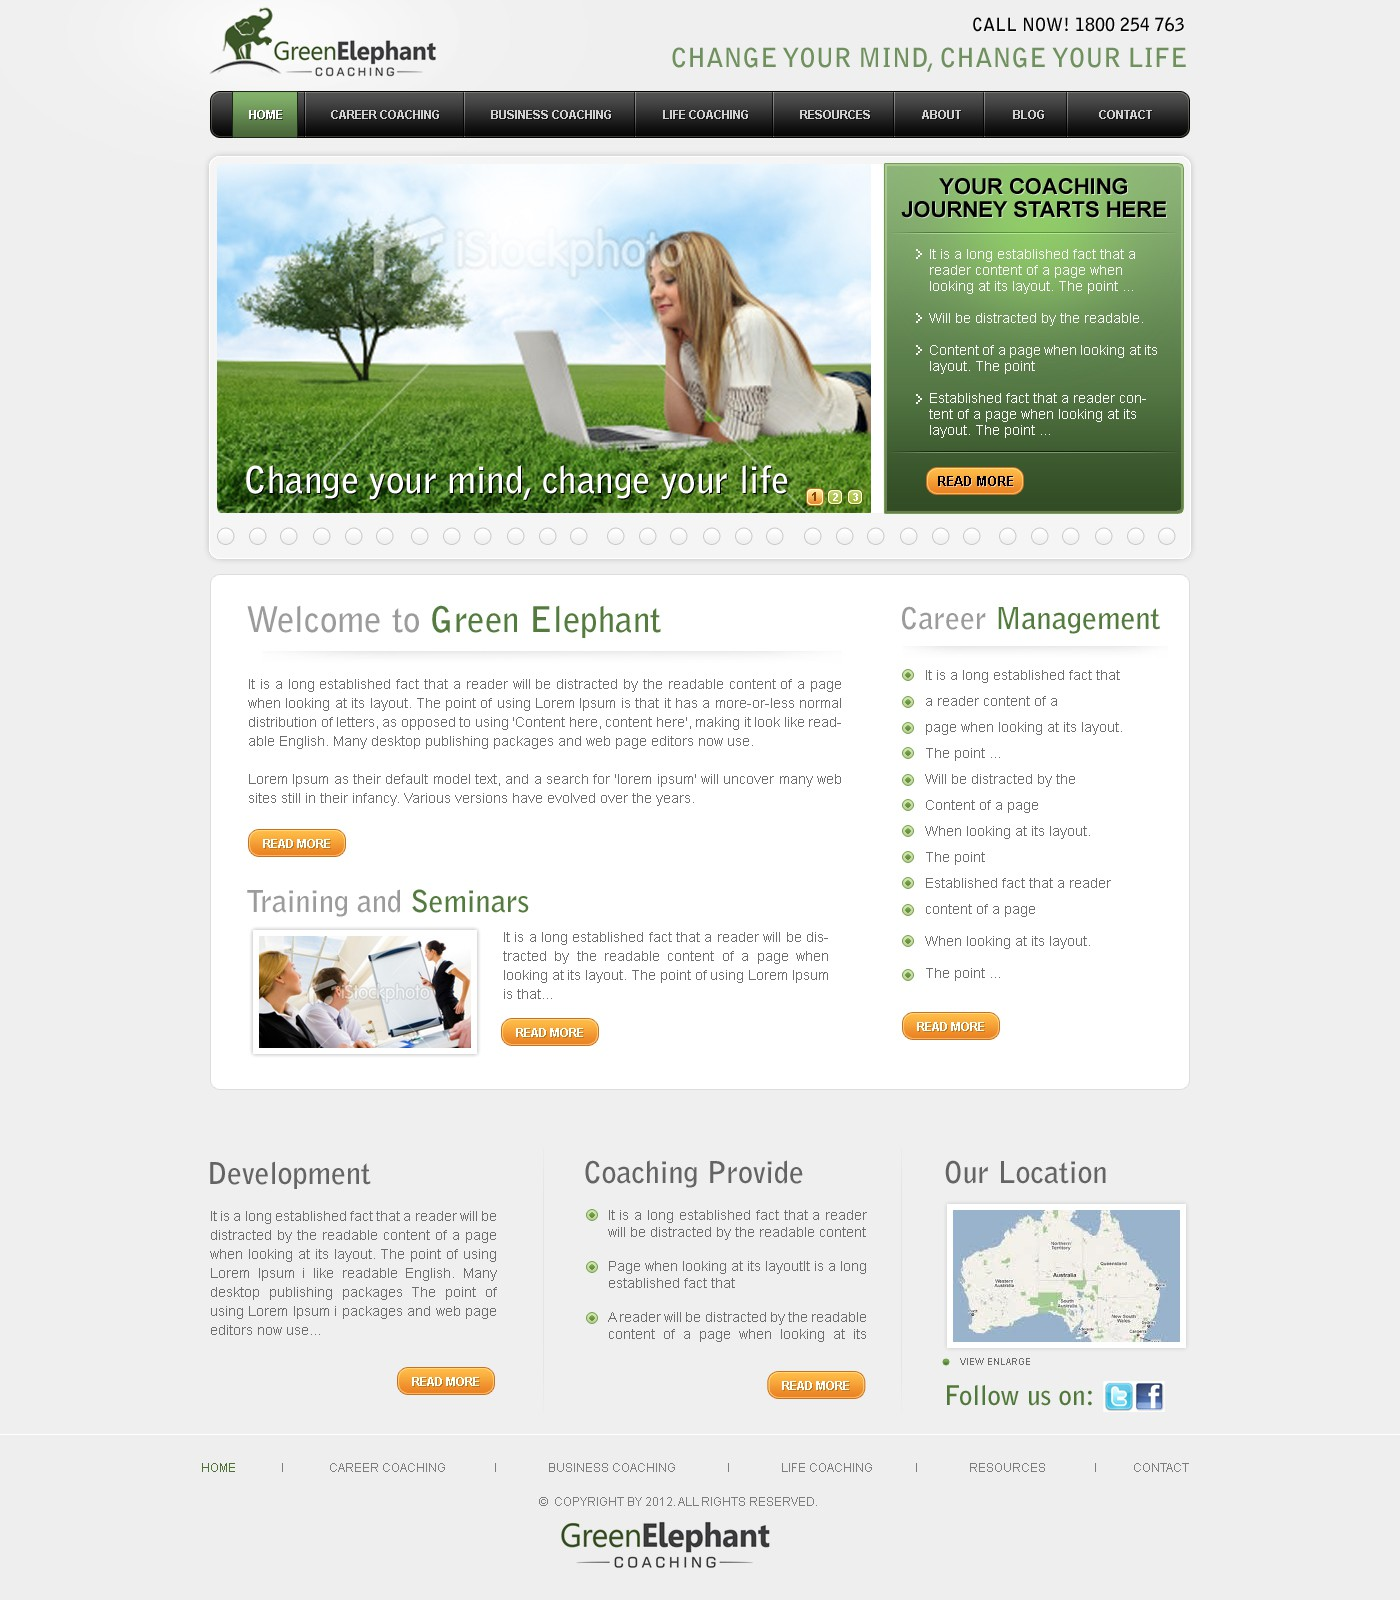 Website look and feel (WordPress theme) for Green Elephant Coaching